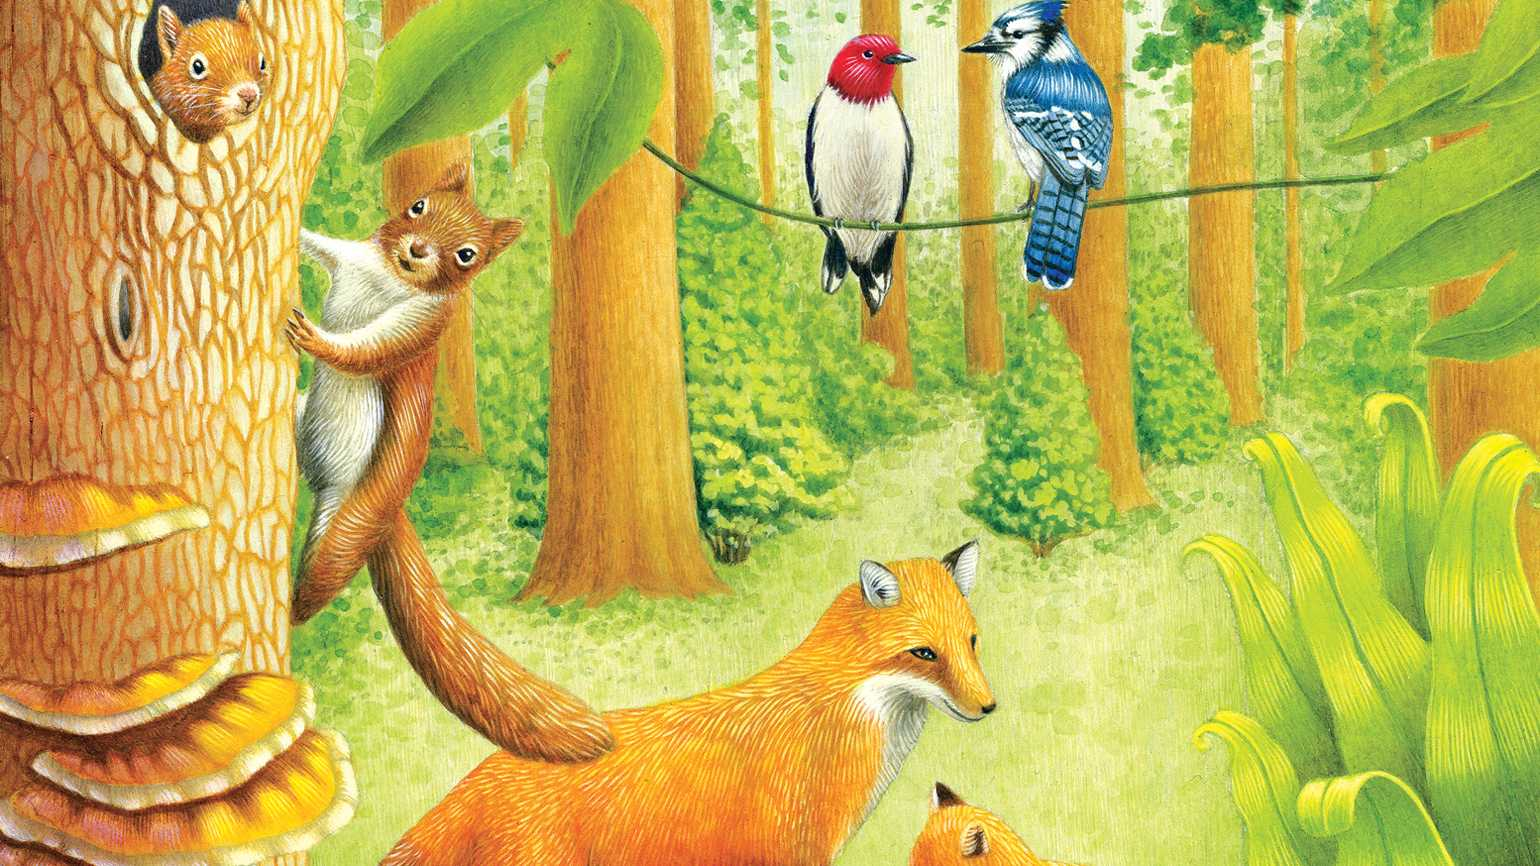 An illustration of foxes, birds and squirrels in a forest; Illustration by Sylvie Fong